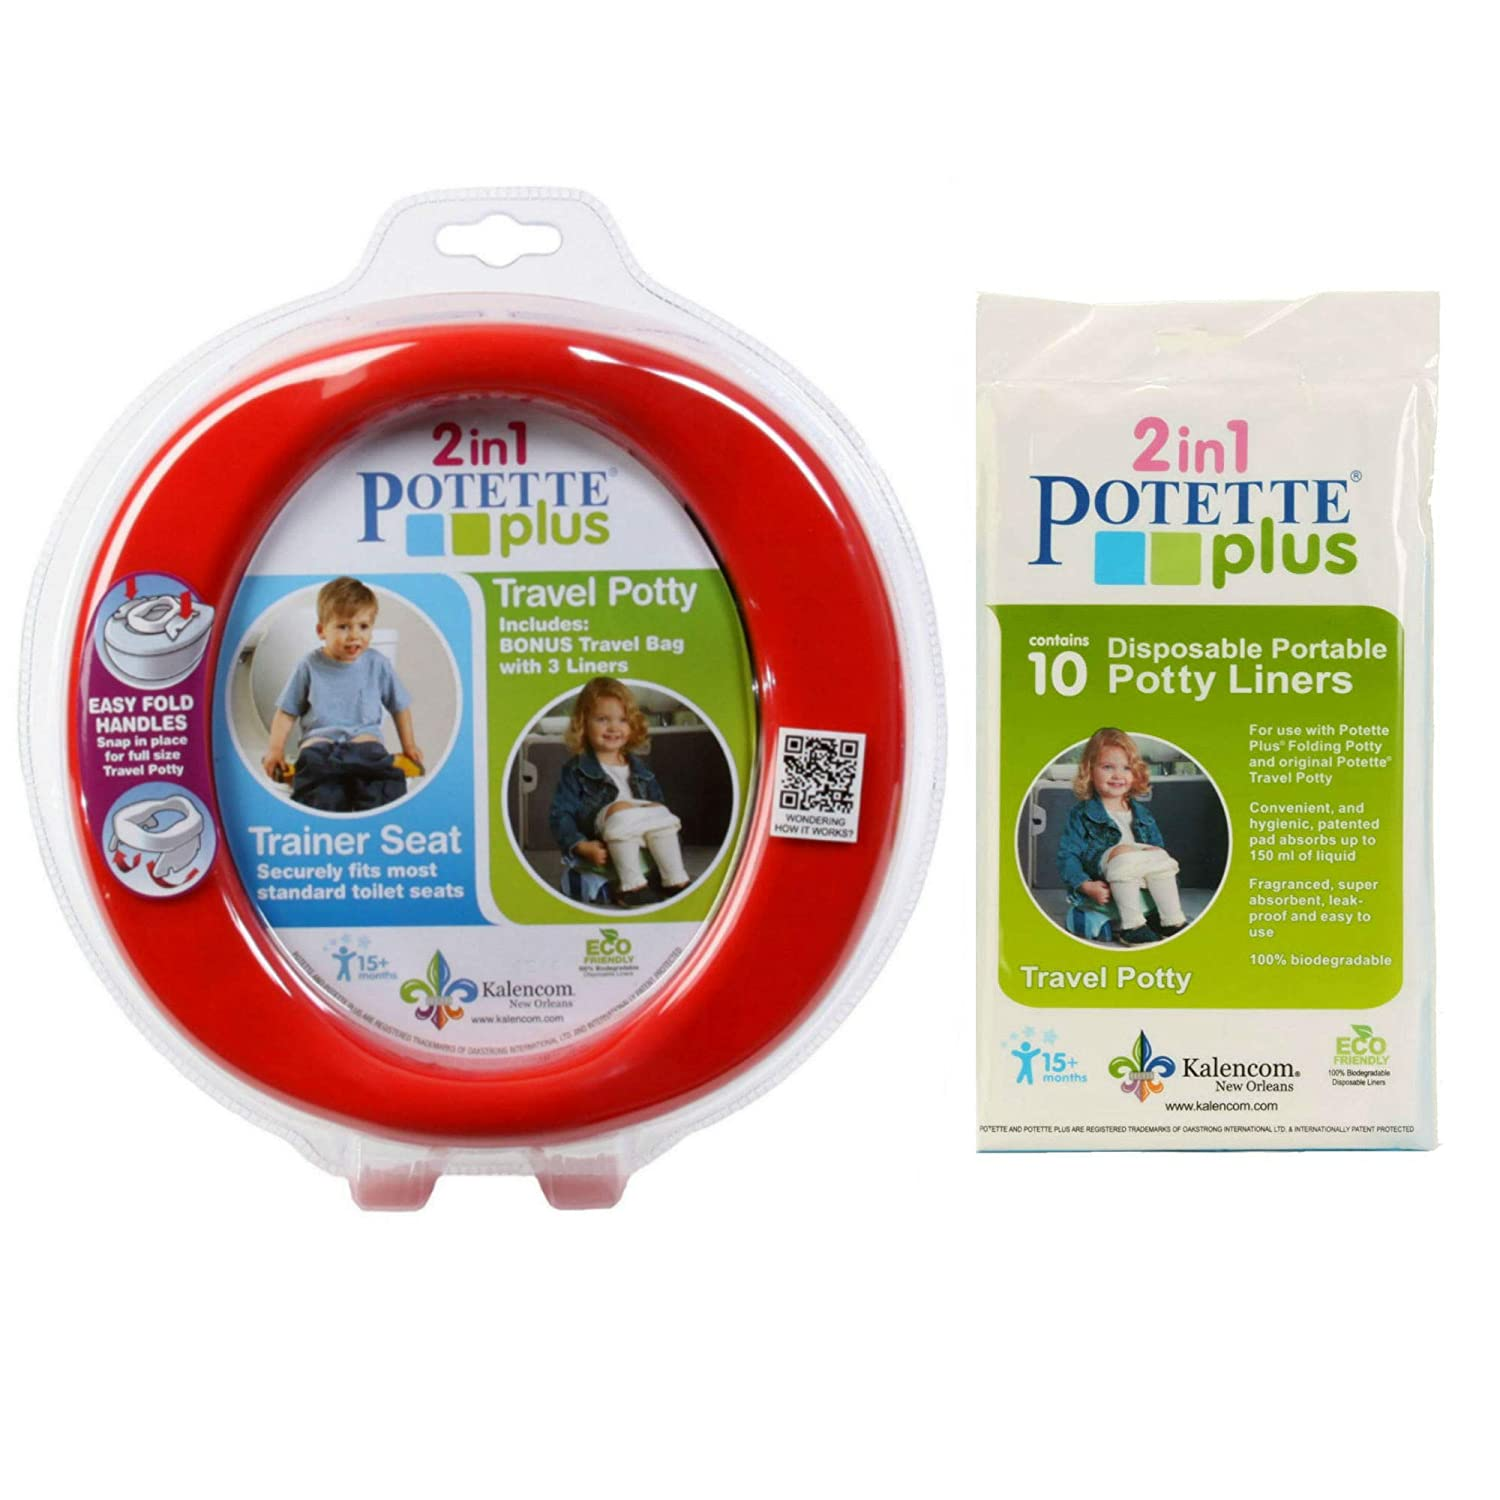 Potette Plus Travel Potty includes EXTRA 10-Pack of Liners Blue Green